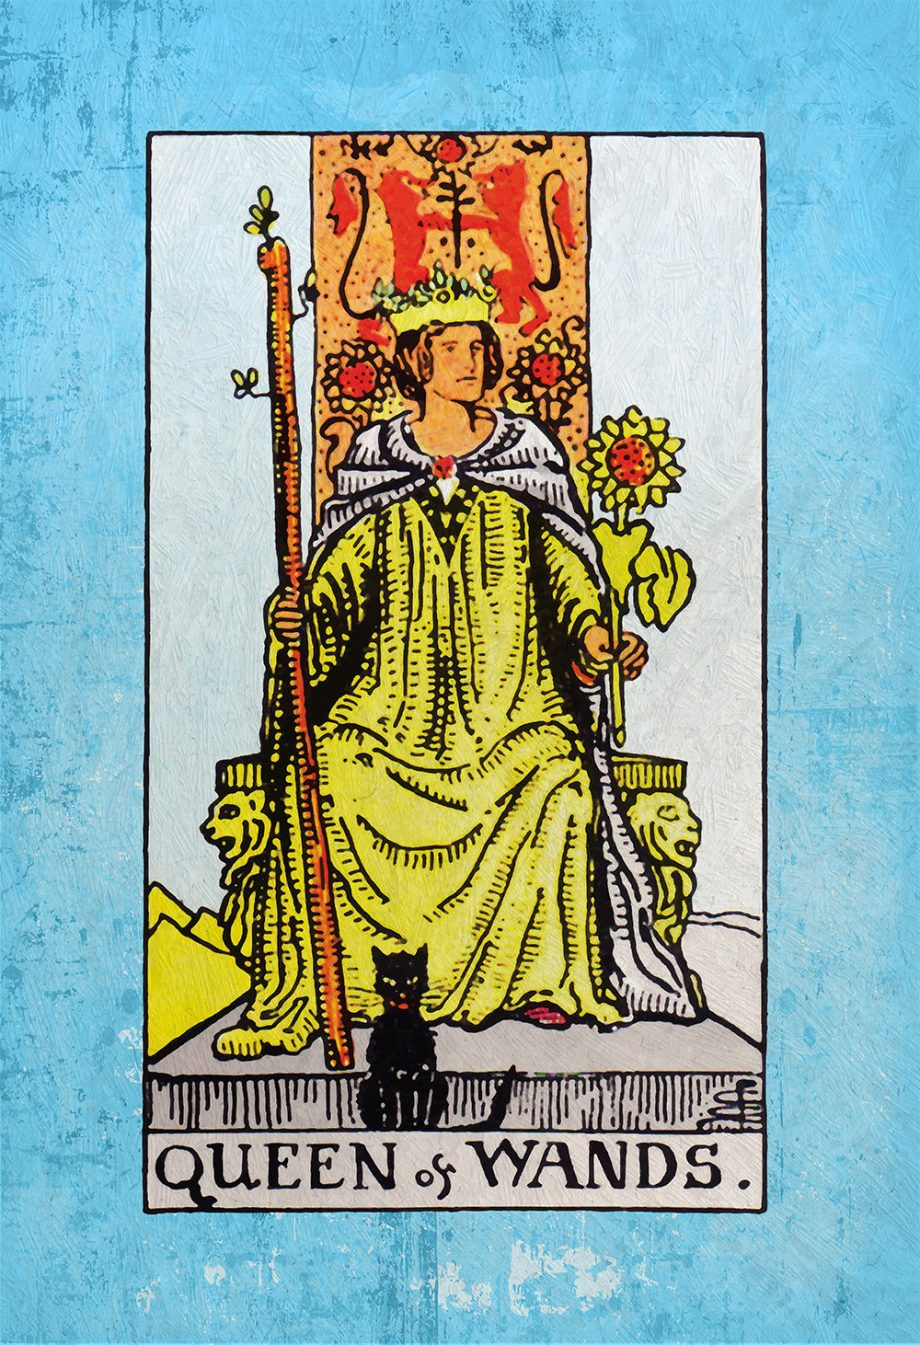 Tarot Print The Queen of Wands Retro Illustration Art Rider Print Vintage Giclee on Cotton Canvas or Paper Canvas Poster Wall Decor